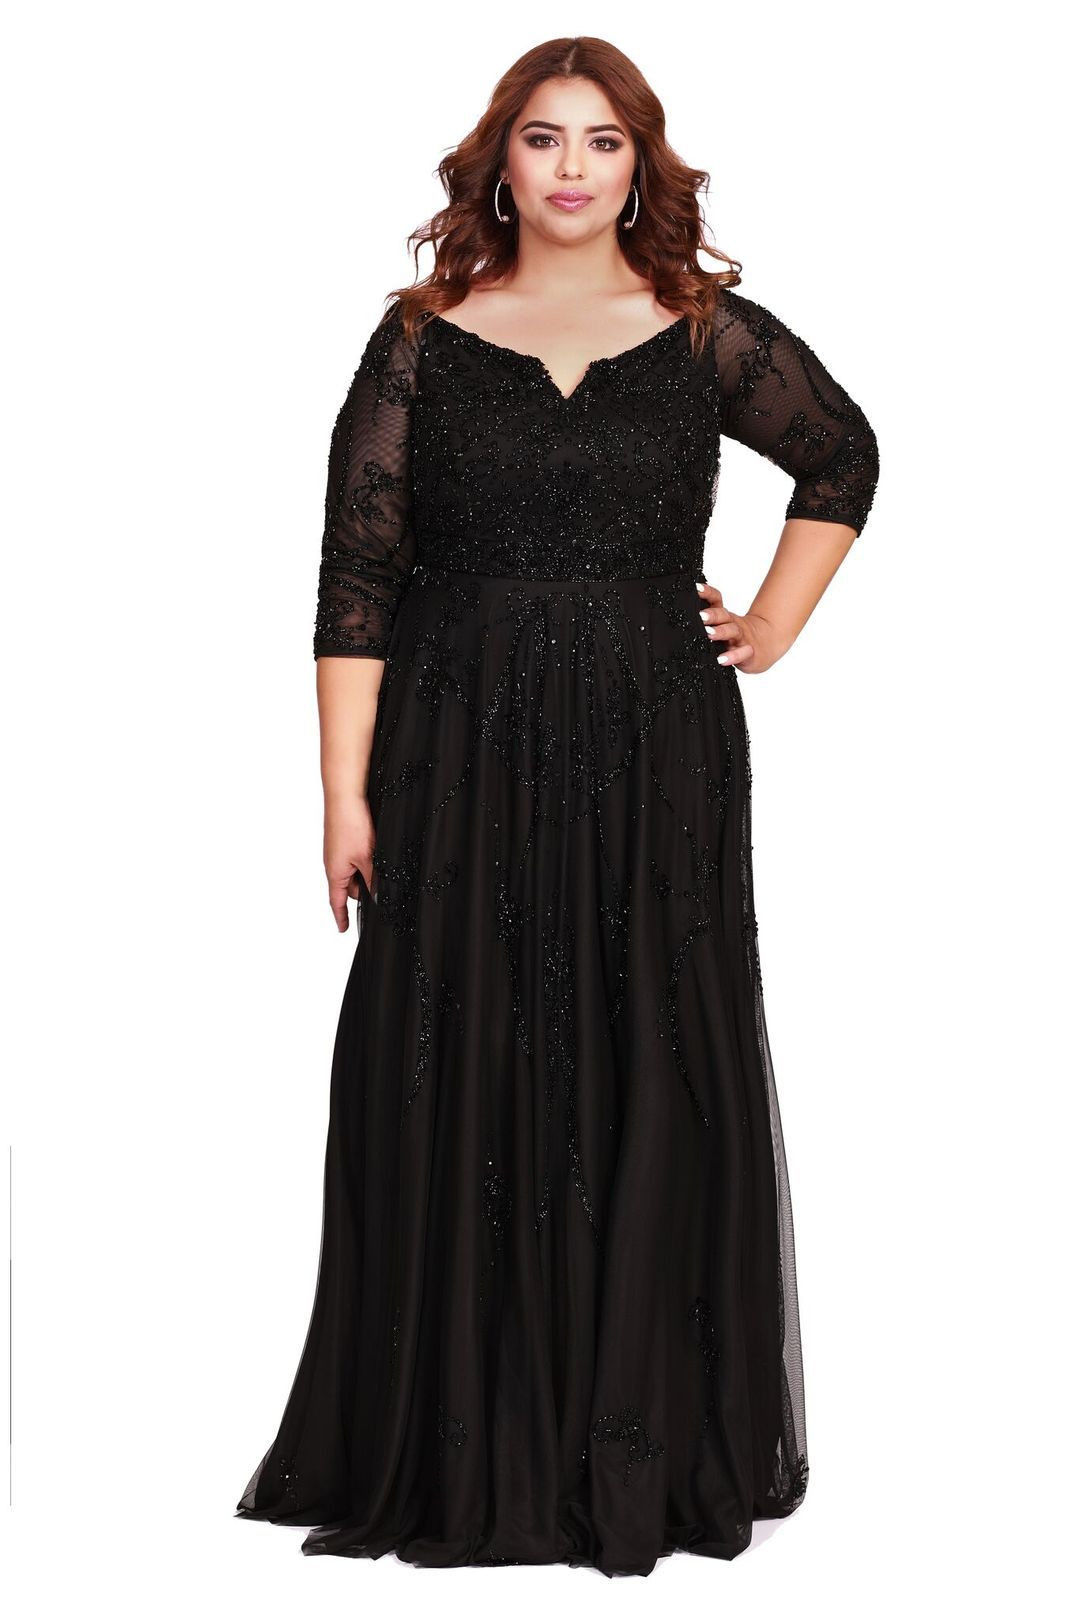 Long sleeve embellished fit to flare mother of the bride